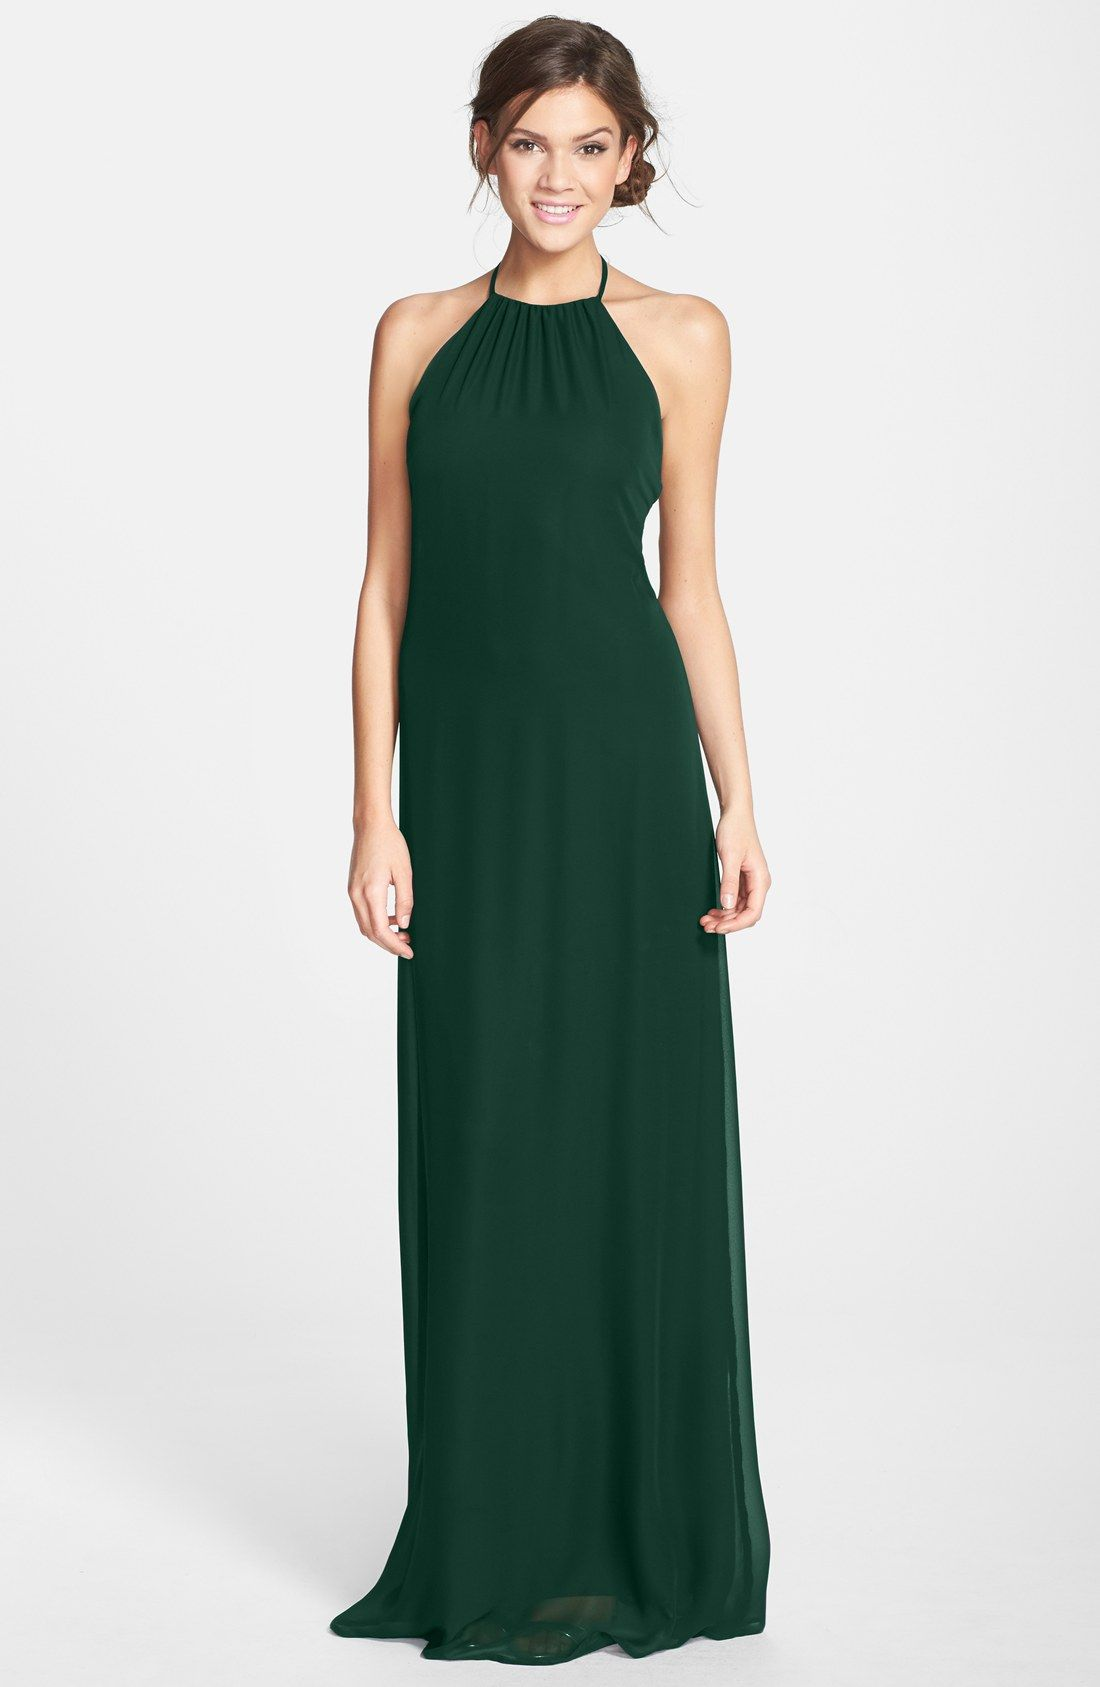 Forest green bridesmaid dress jordan open back chiffon halter forest green bridesmaid dress jordan open back chiffon halter gown ombrellifo Image collections